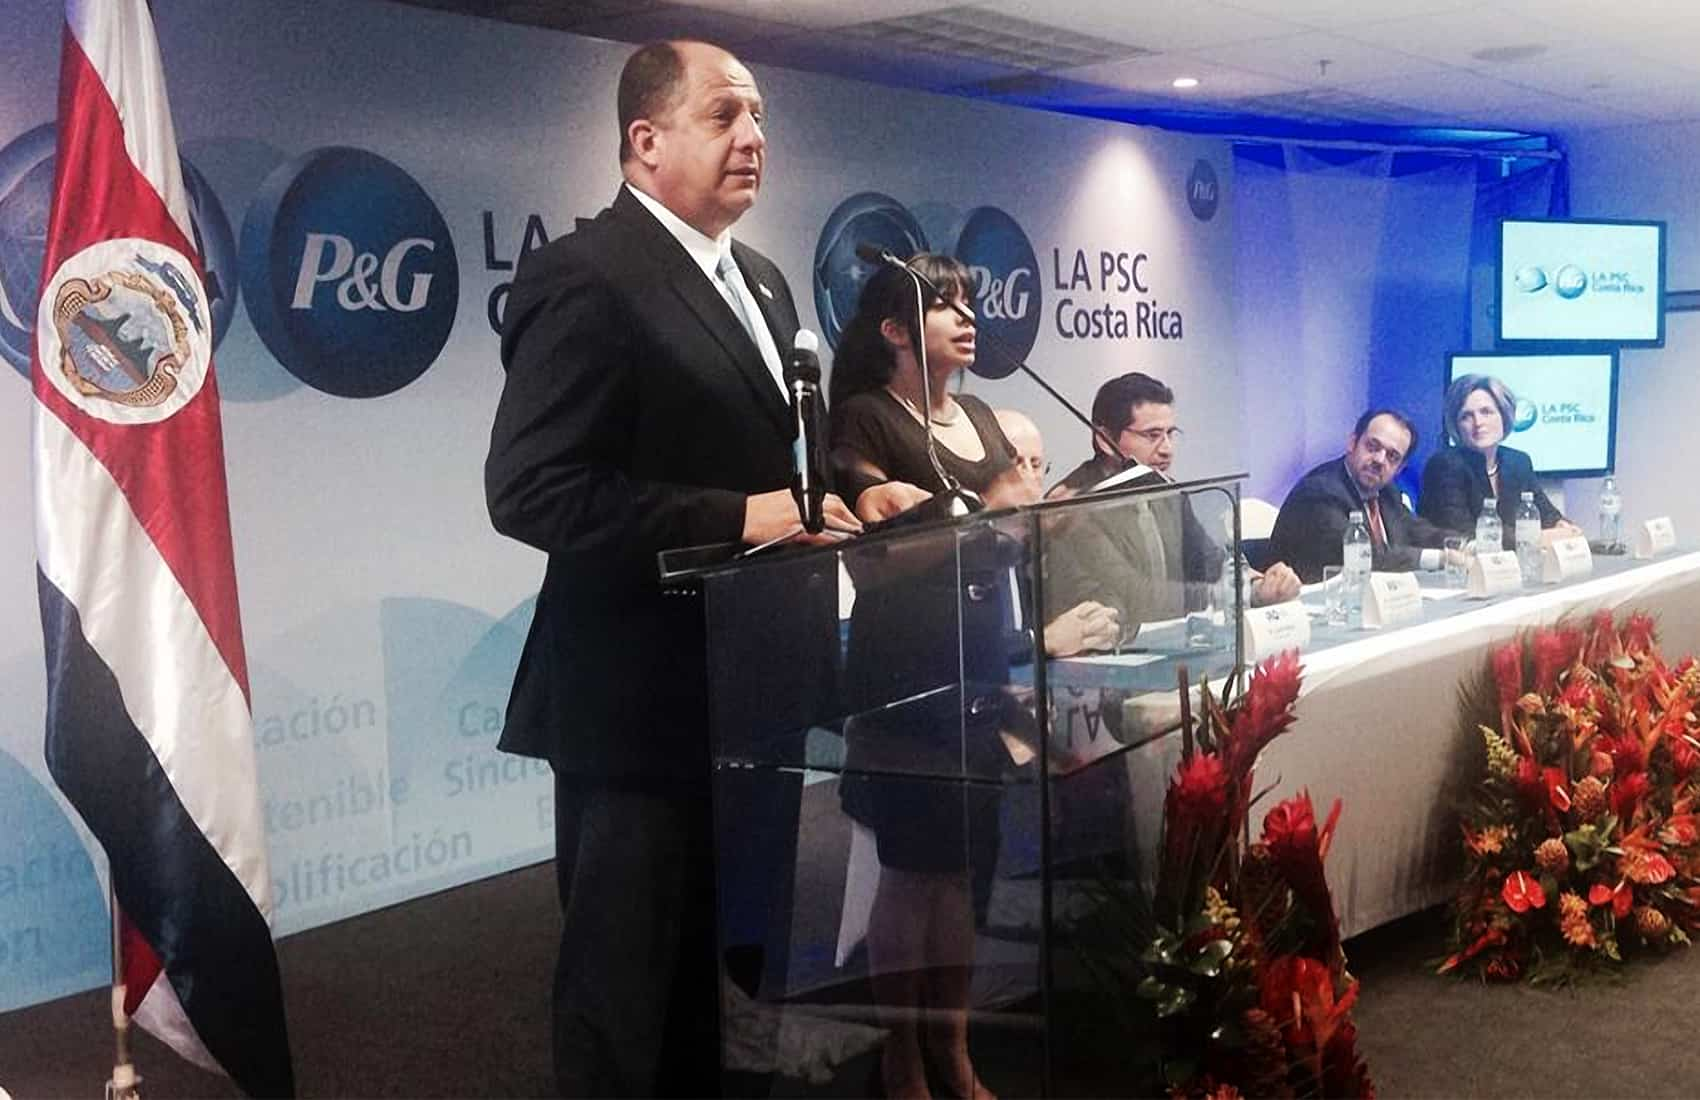 President Luis Guillermo Solís at P&G